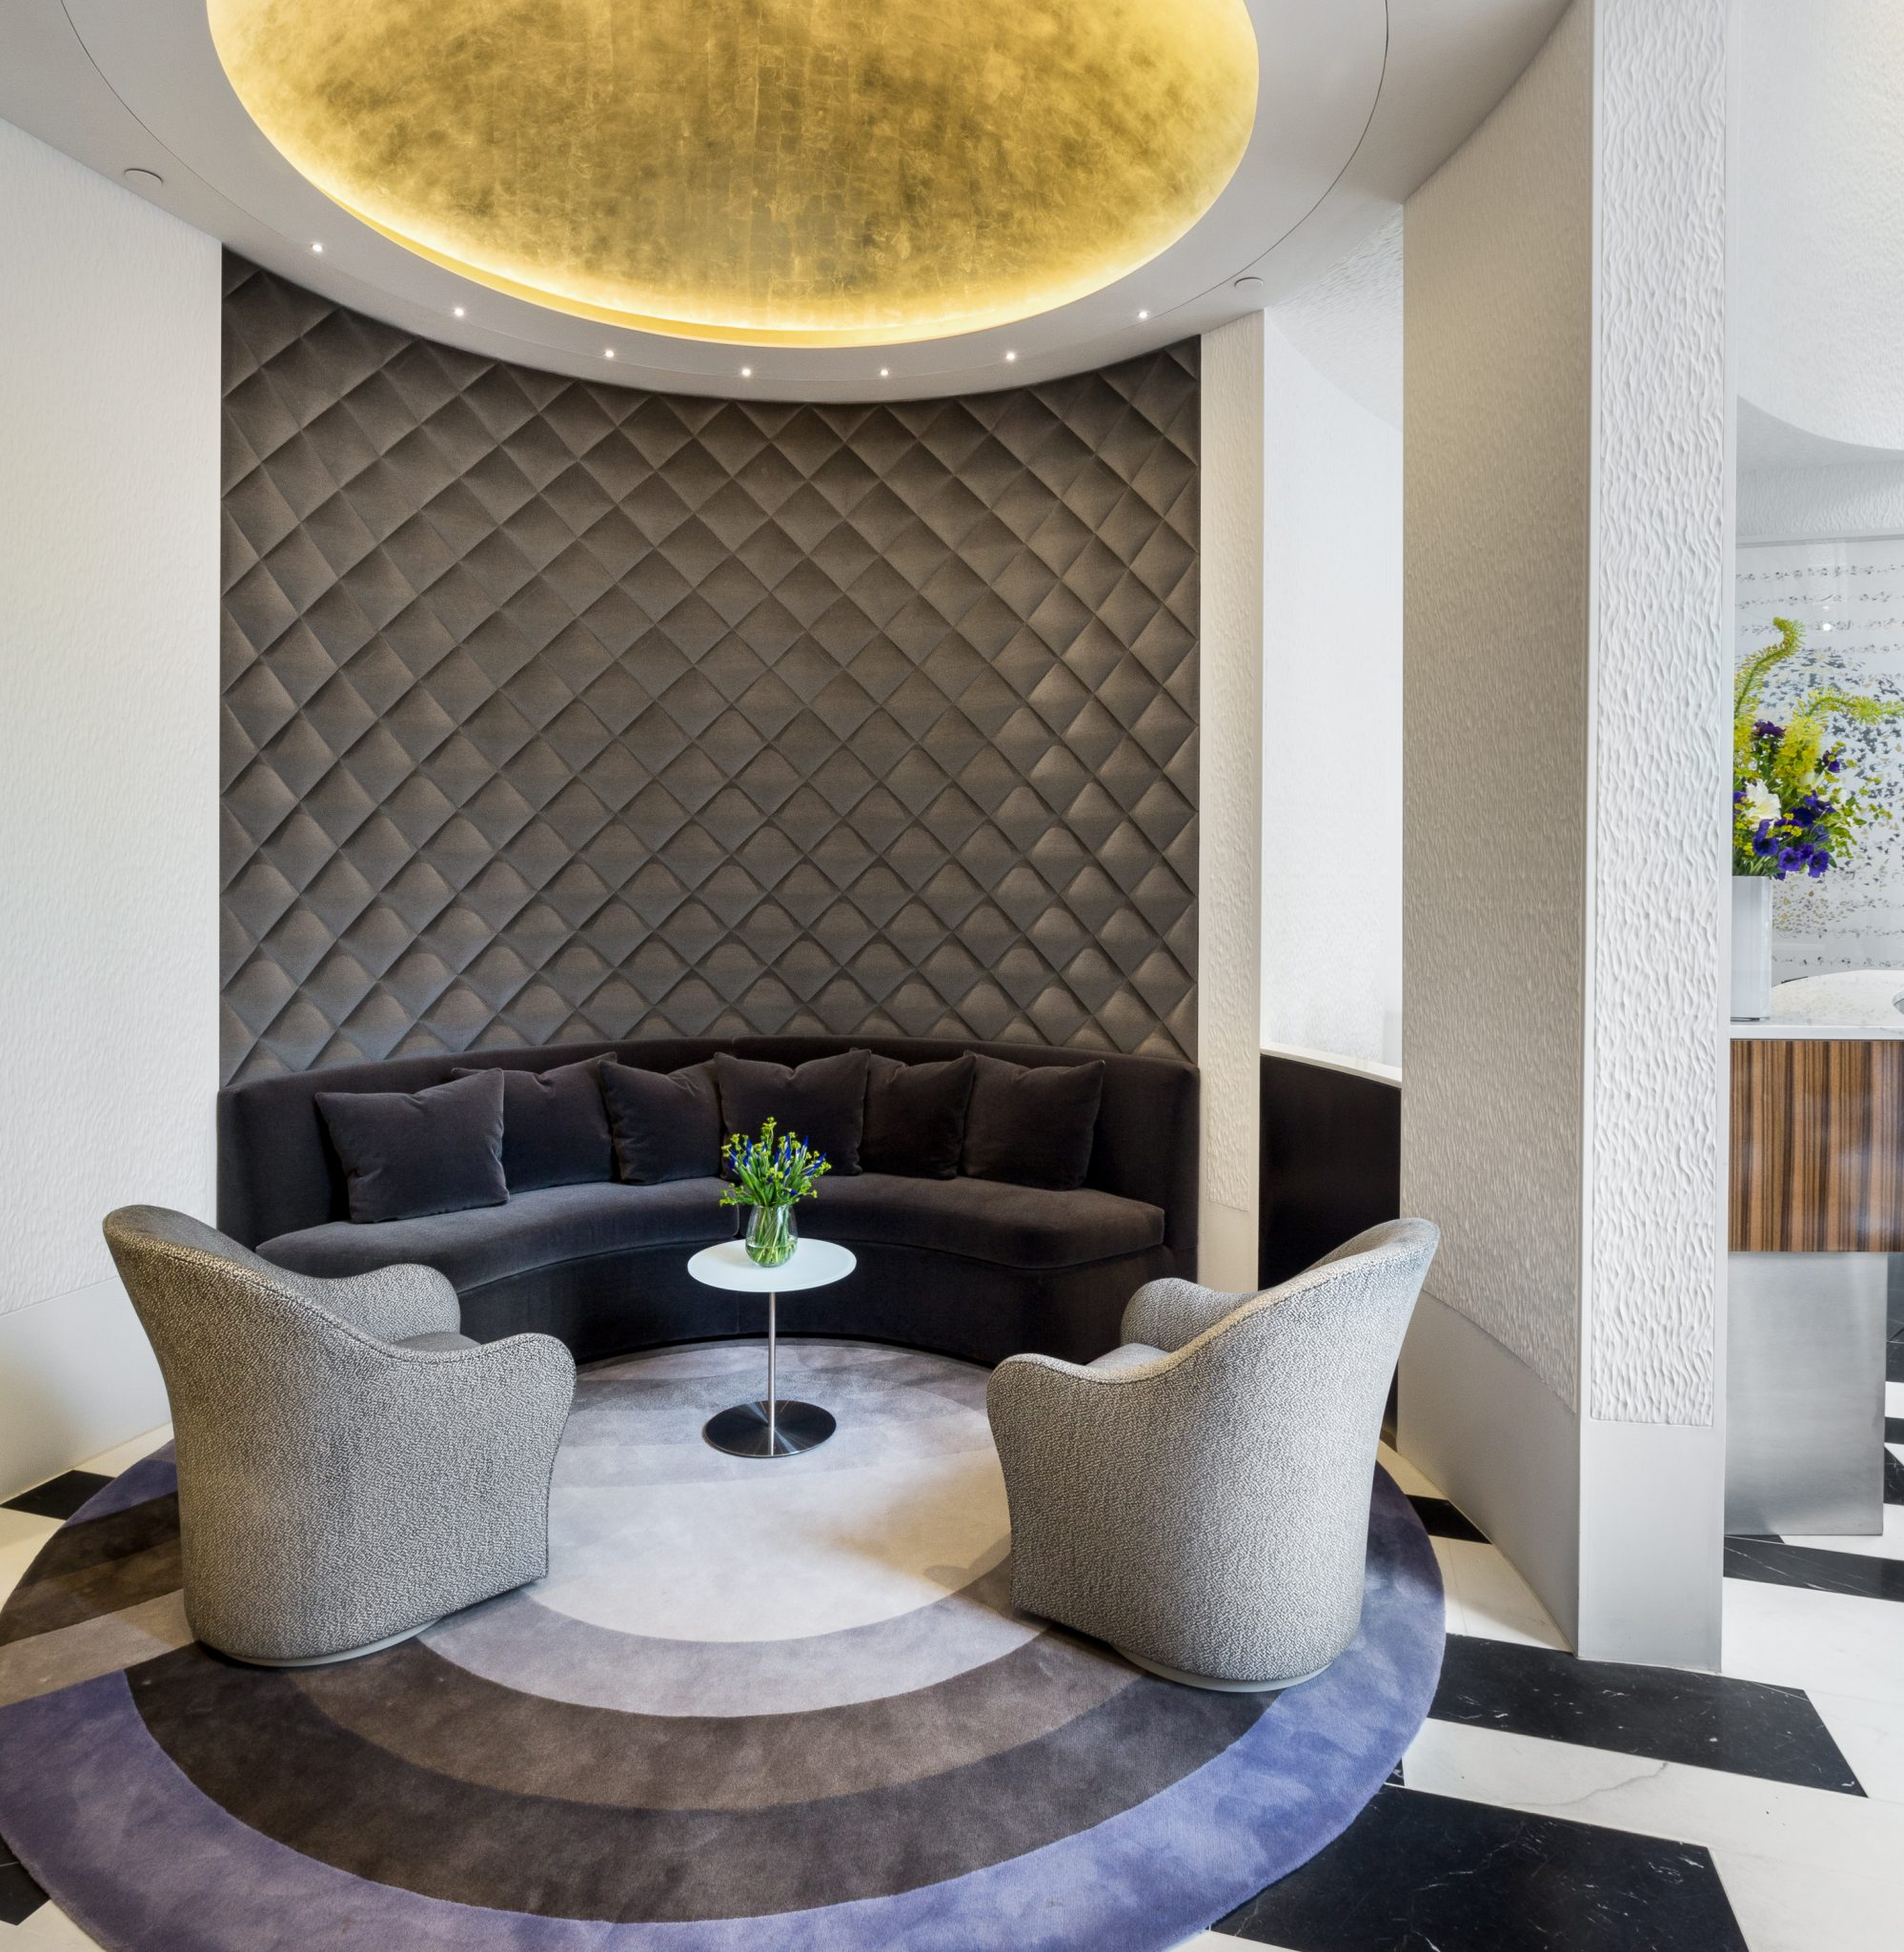 181 Fremont - Amenities Photography